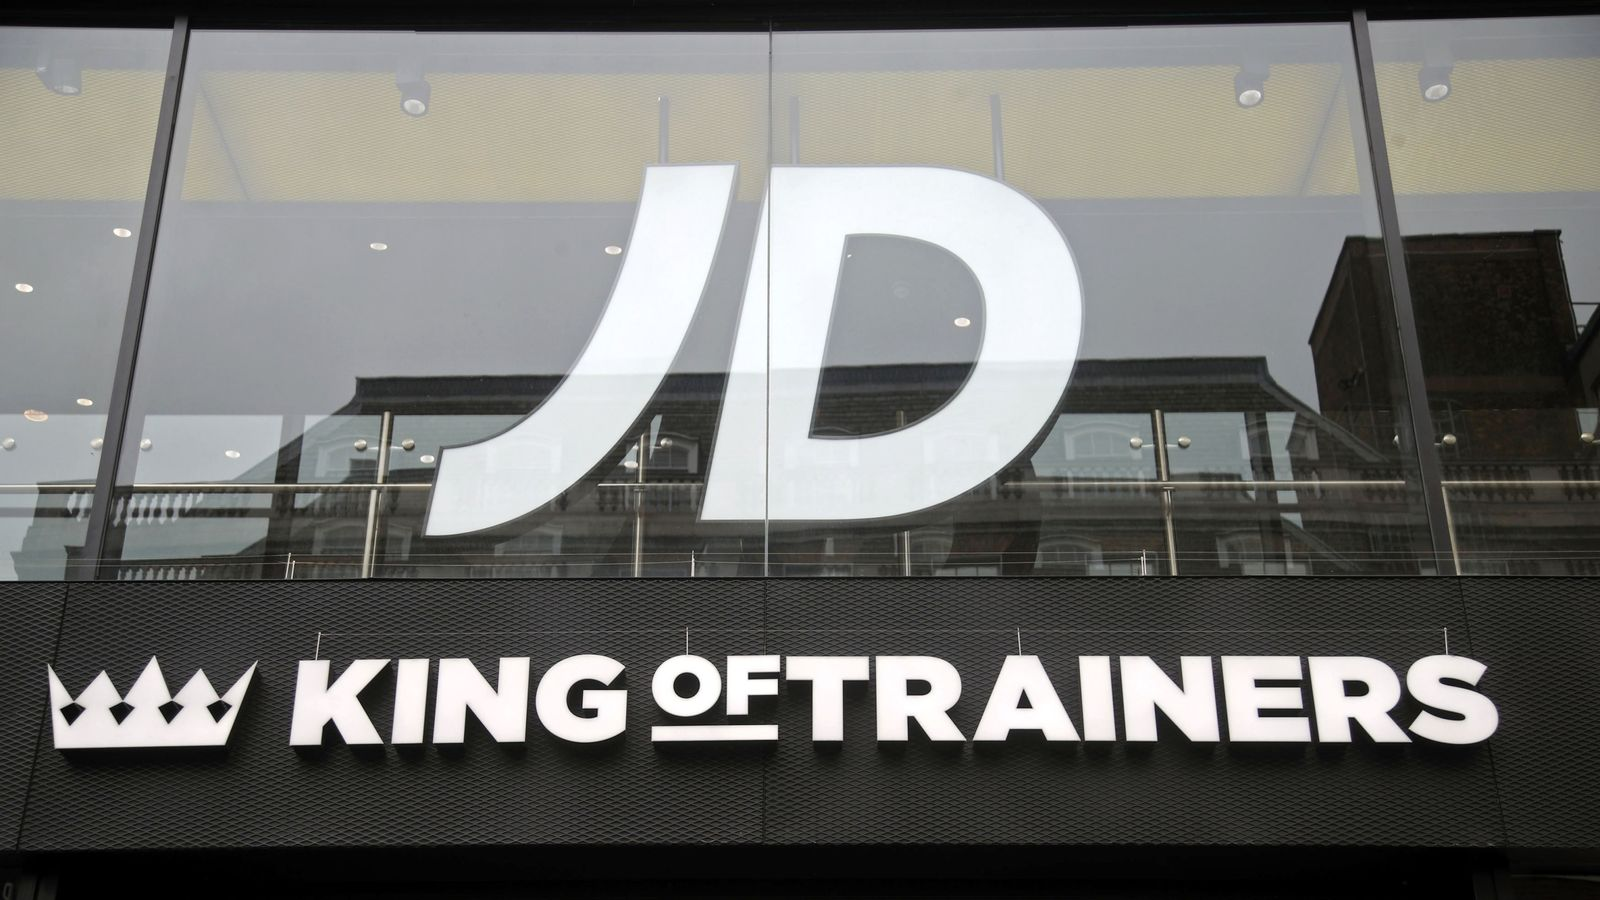 JD takeover of Footasylum 'could leave shoppers worse off'